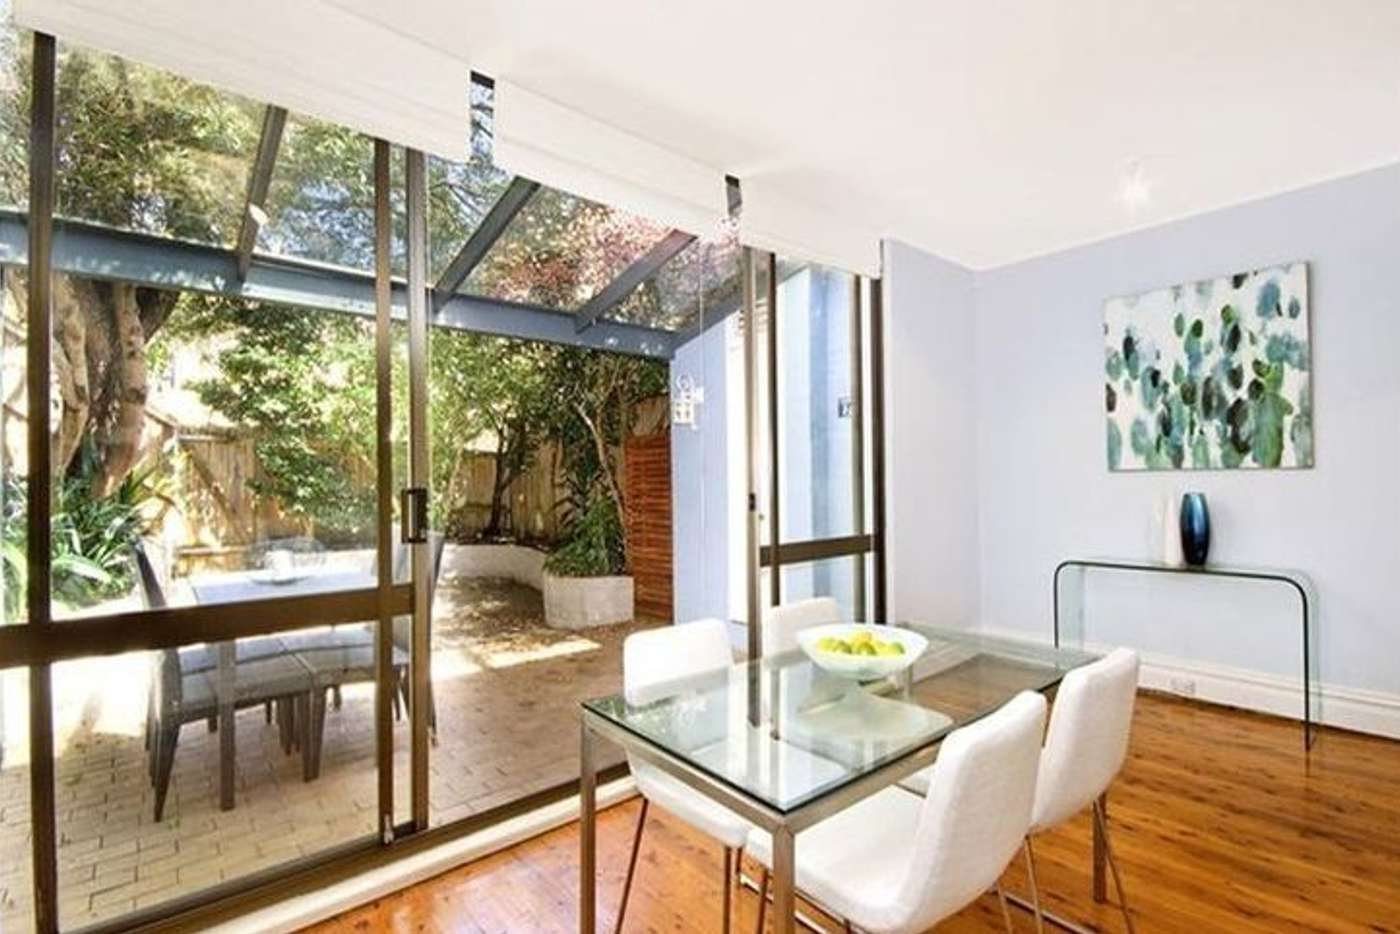 Main view of Homely house listing, 13 Edward Street, Woollahra NSW 2025